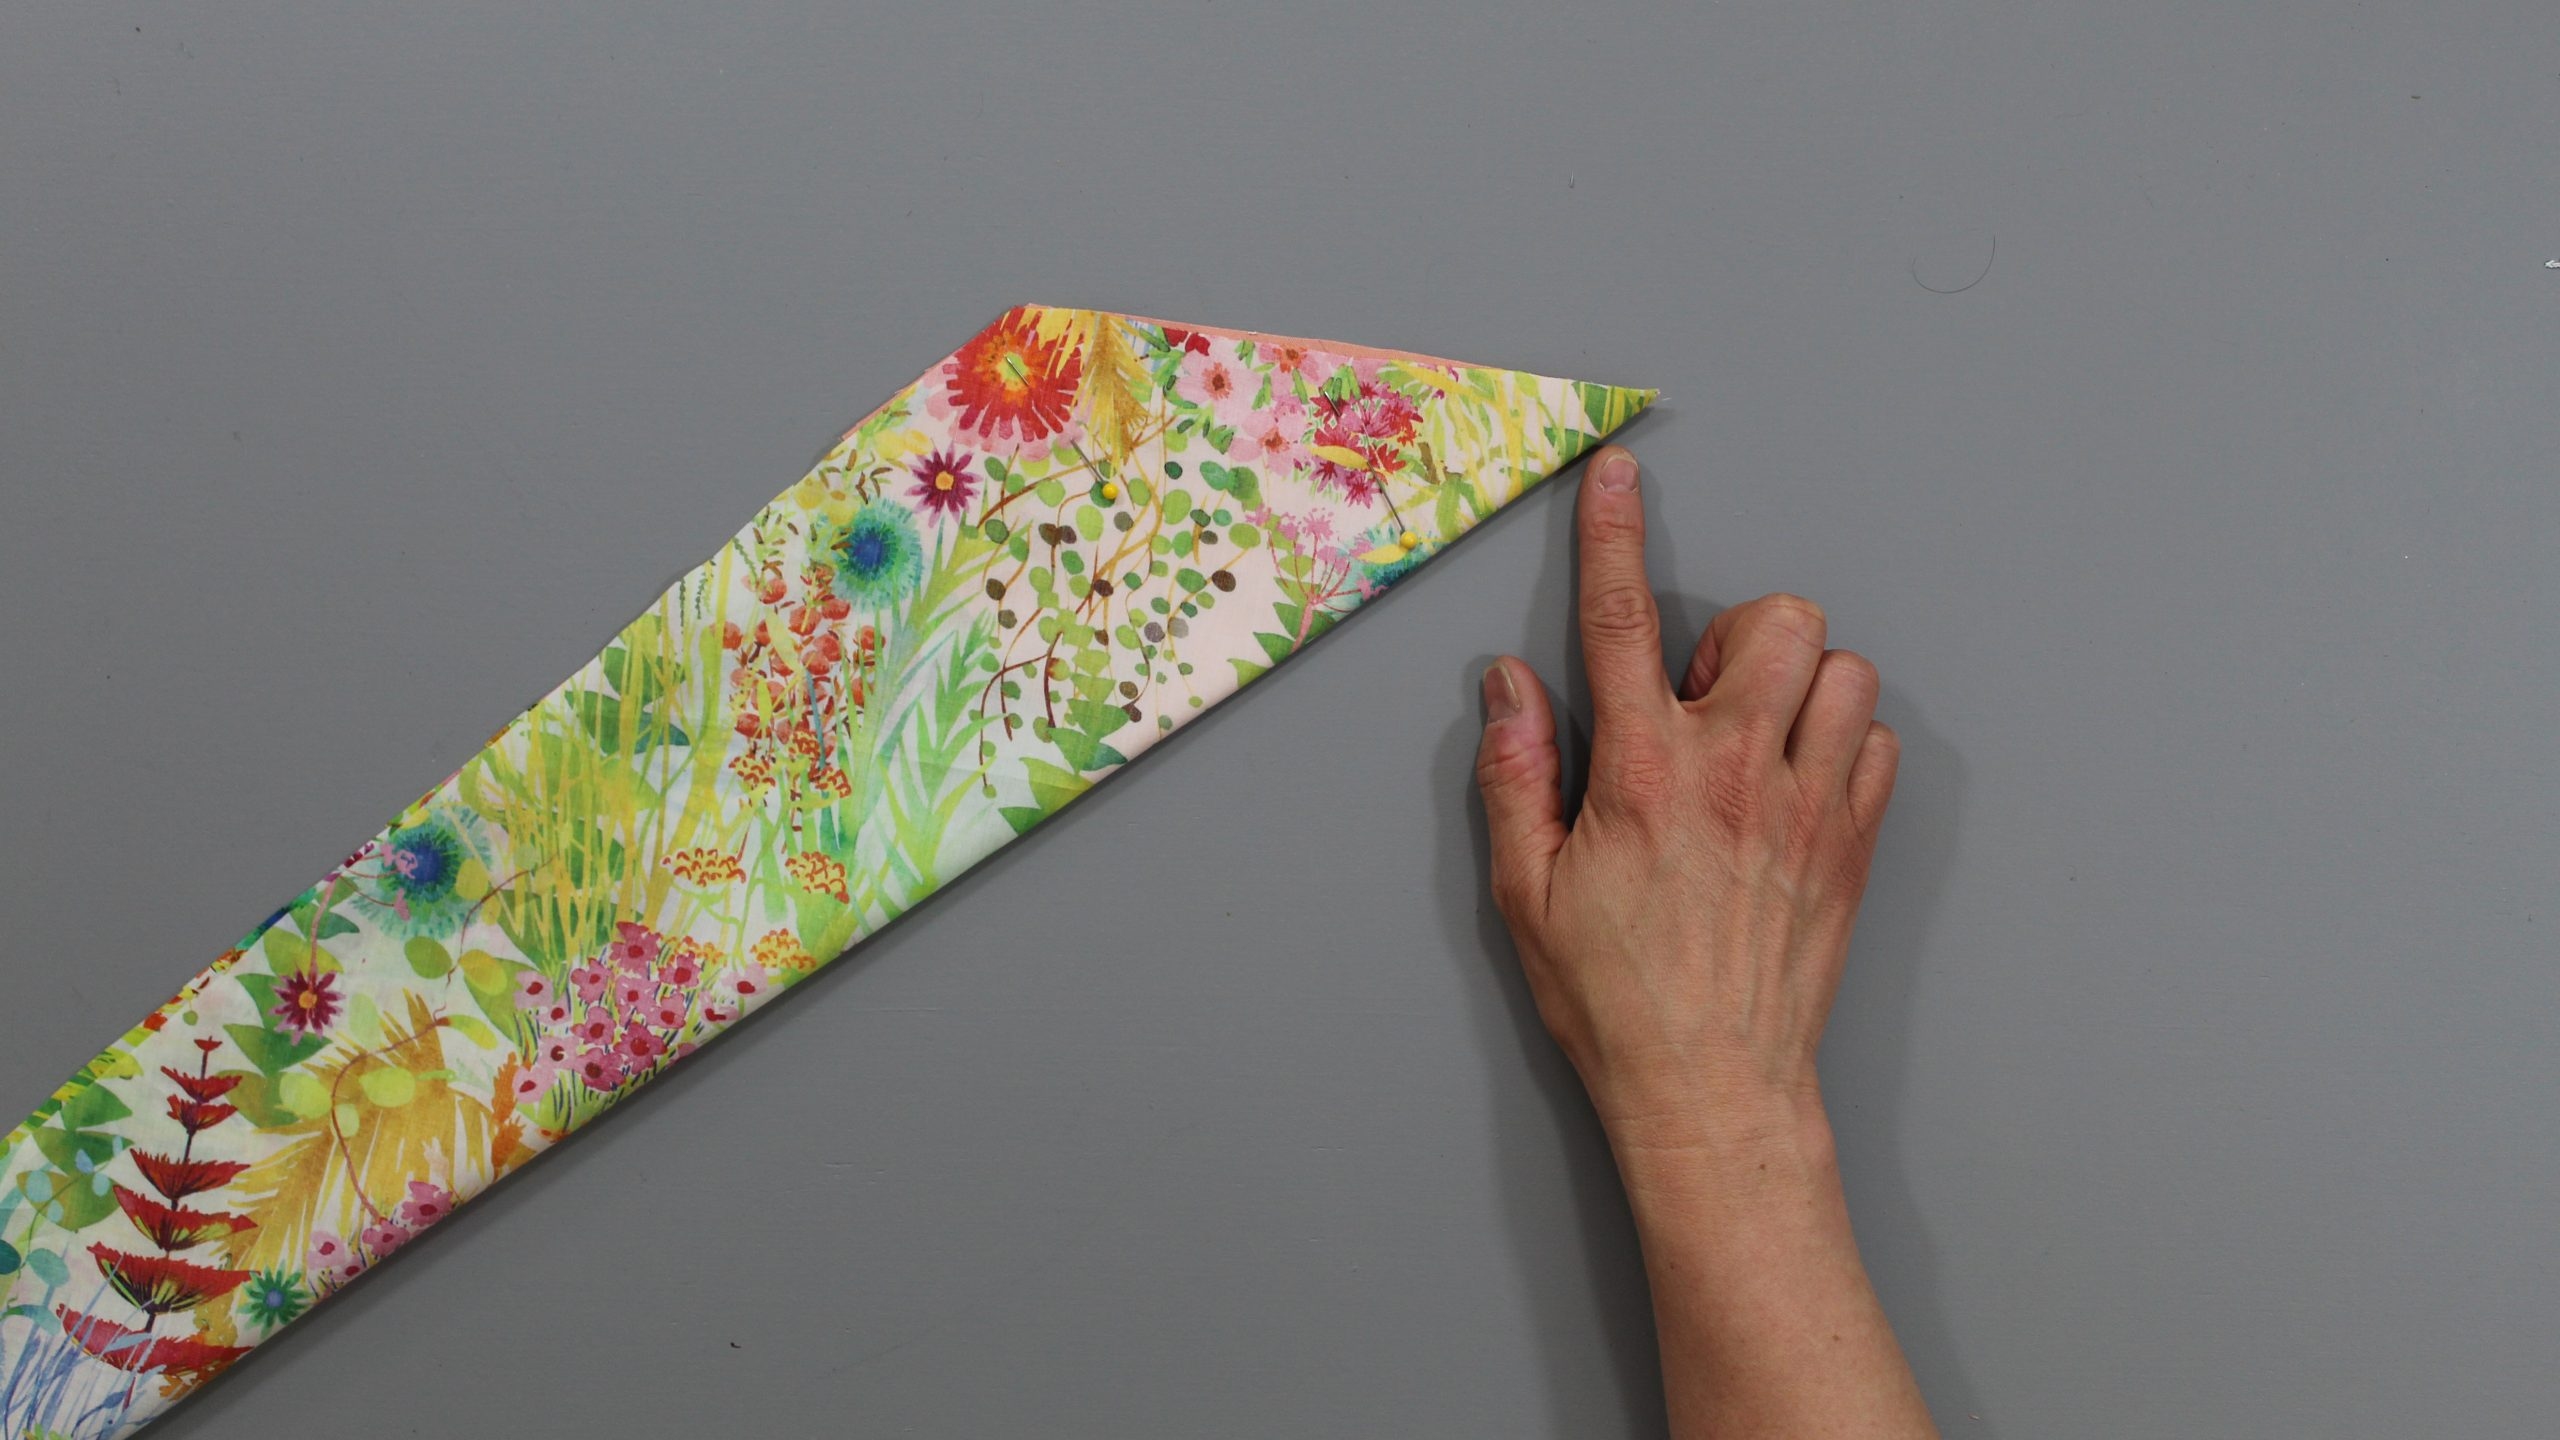 Folded fabric pieces